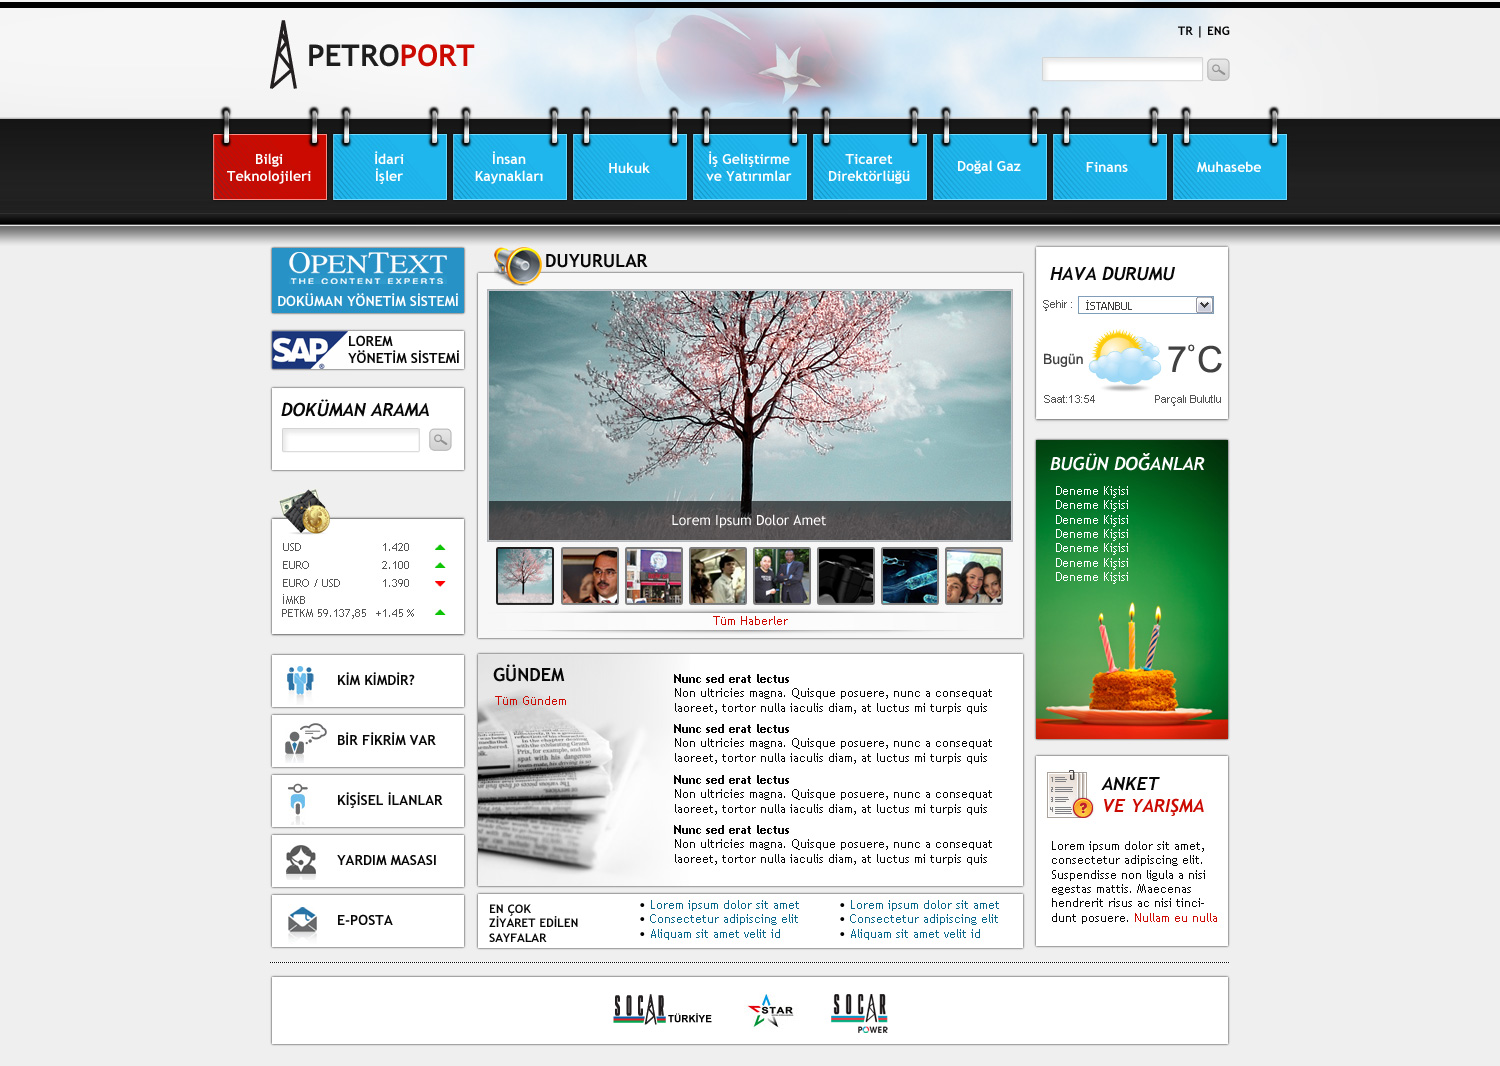 Sharepoint intranet portal by blackiron on deviantart for Intranet portal design templates